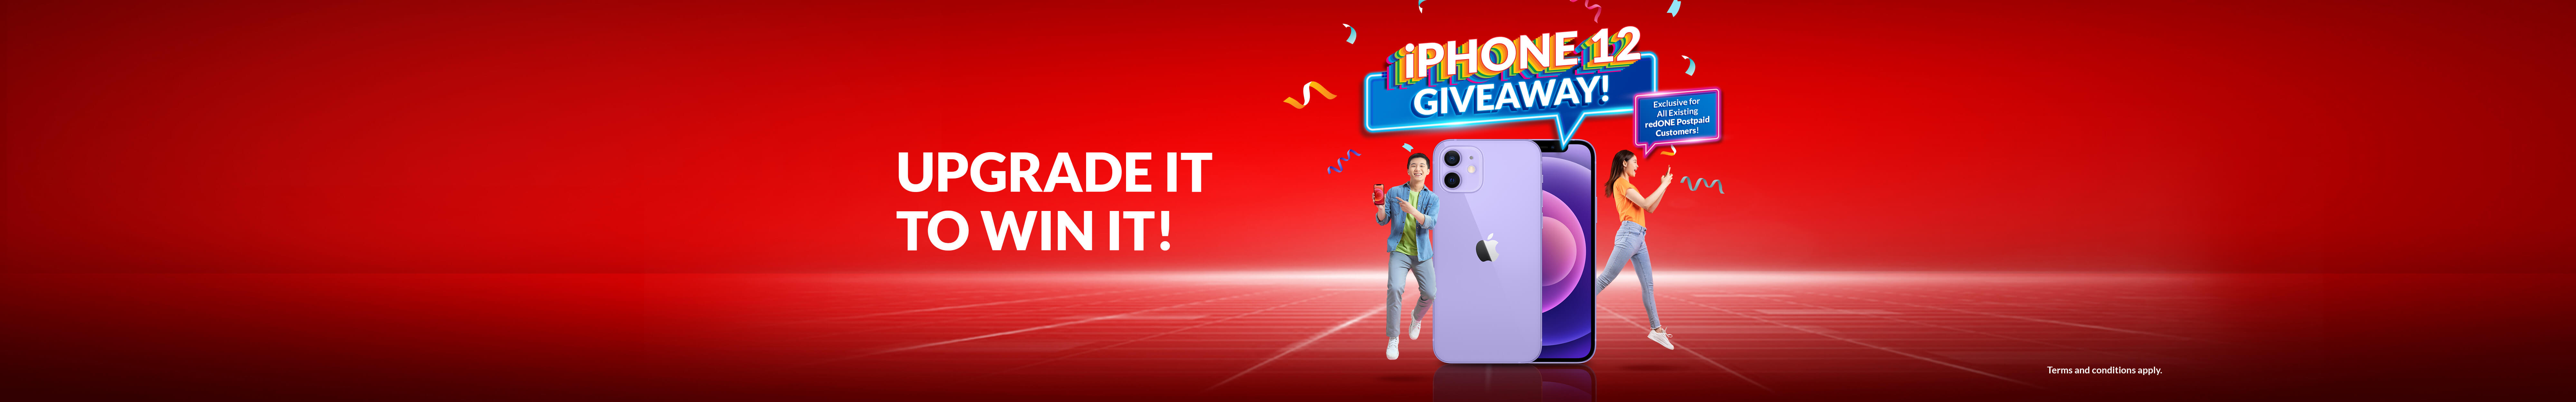 Win an iPhone 12 monthly from now until December 2021!